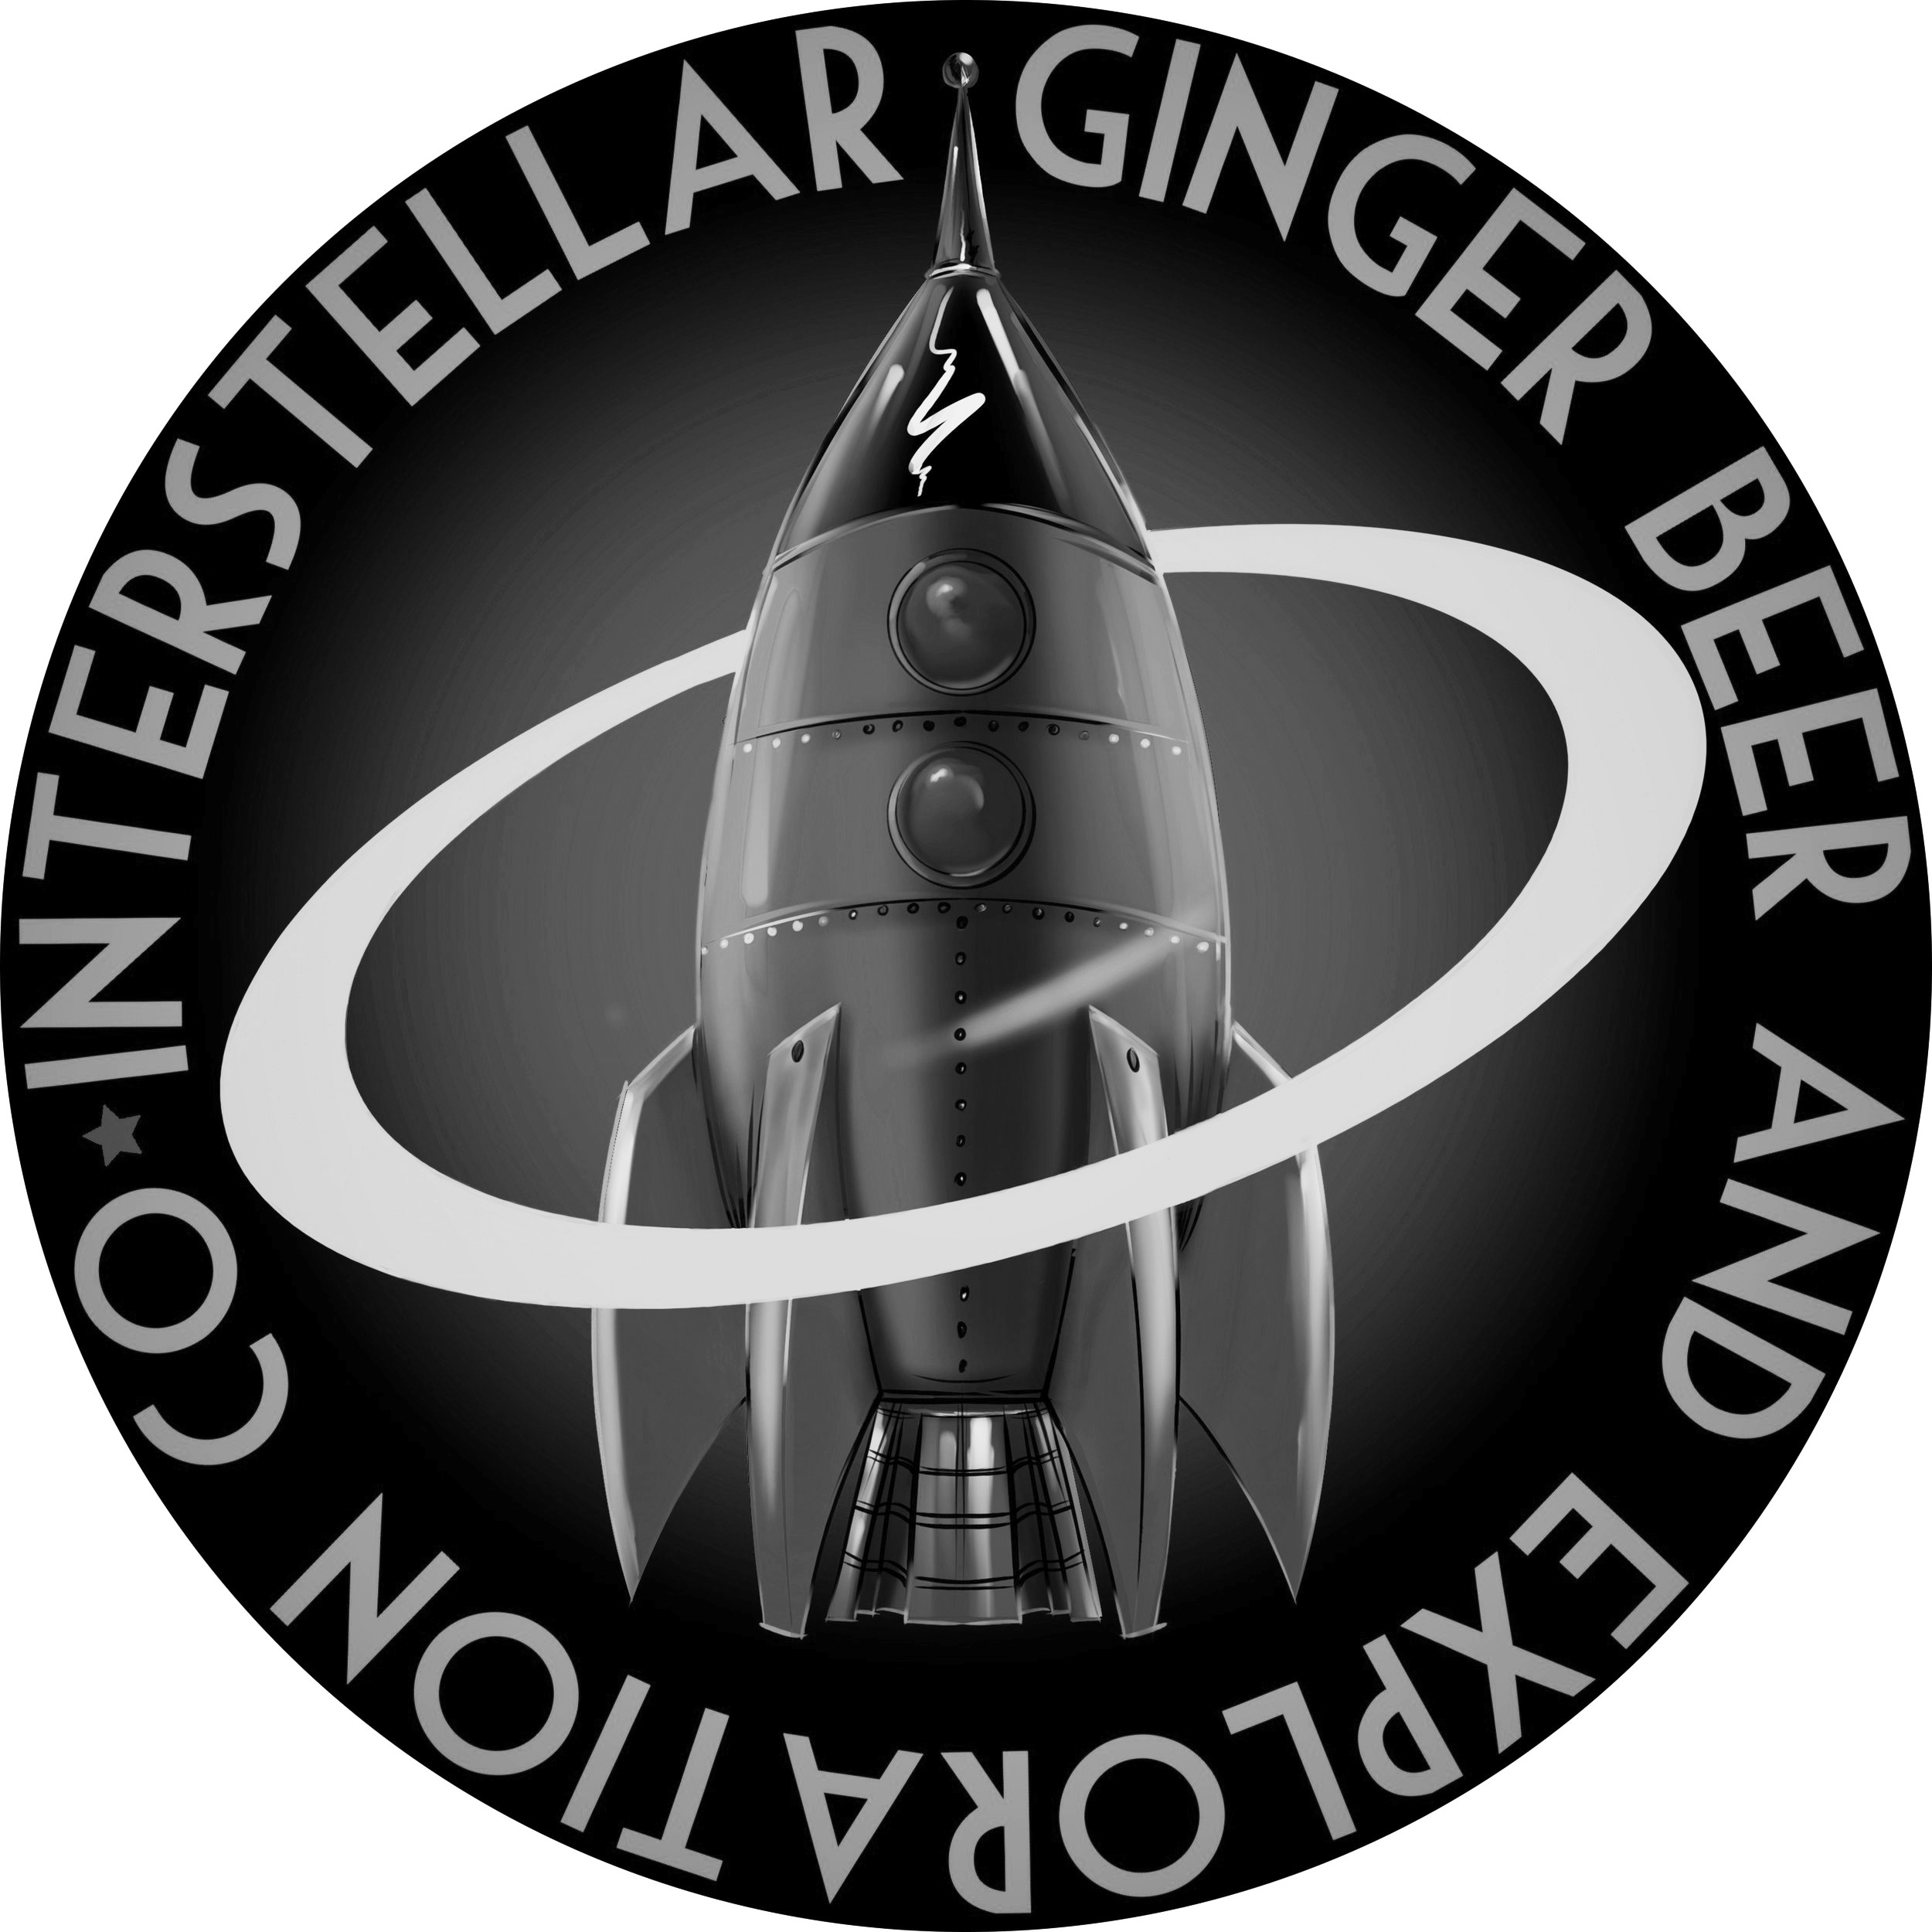 Interstellar Ginger Beer and Exploration Co. - Daniel Sims, CO-FOUNDER